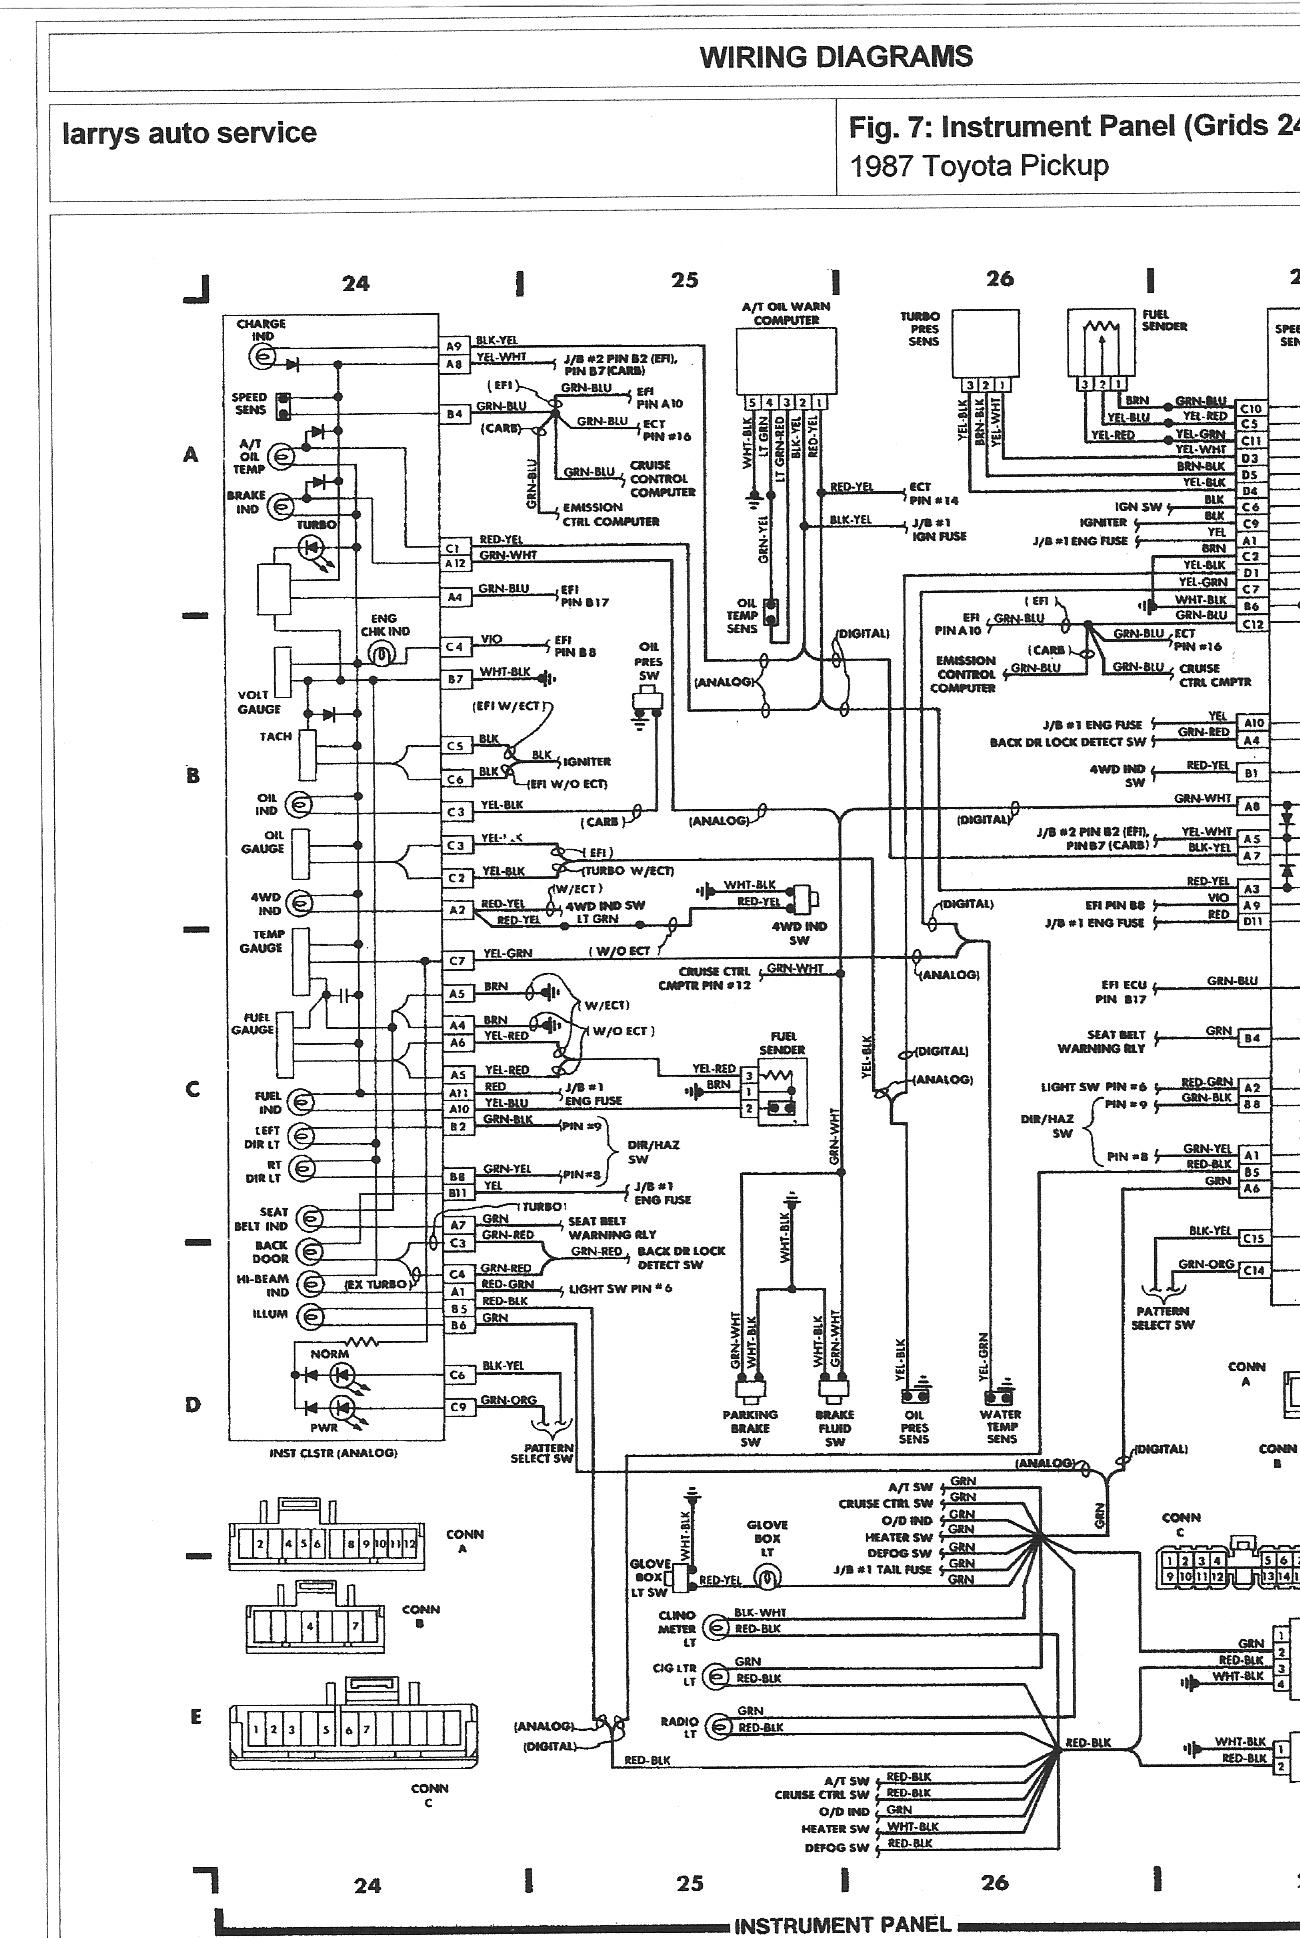 i have a 1987 toyota pickup 4wd 22r engine. my temp gauge ... toyota 20r wiring diagram nema l5 20r wiring diagram #8